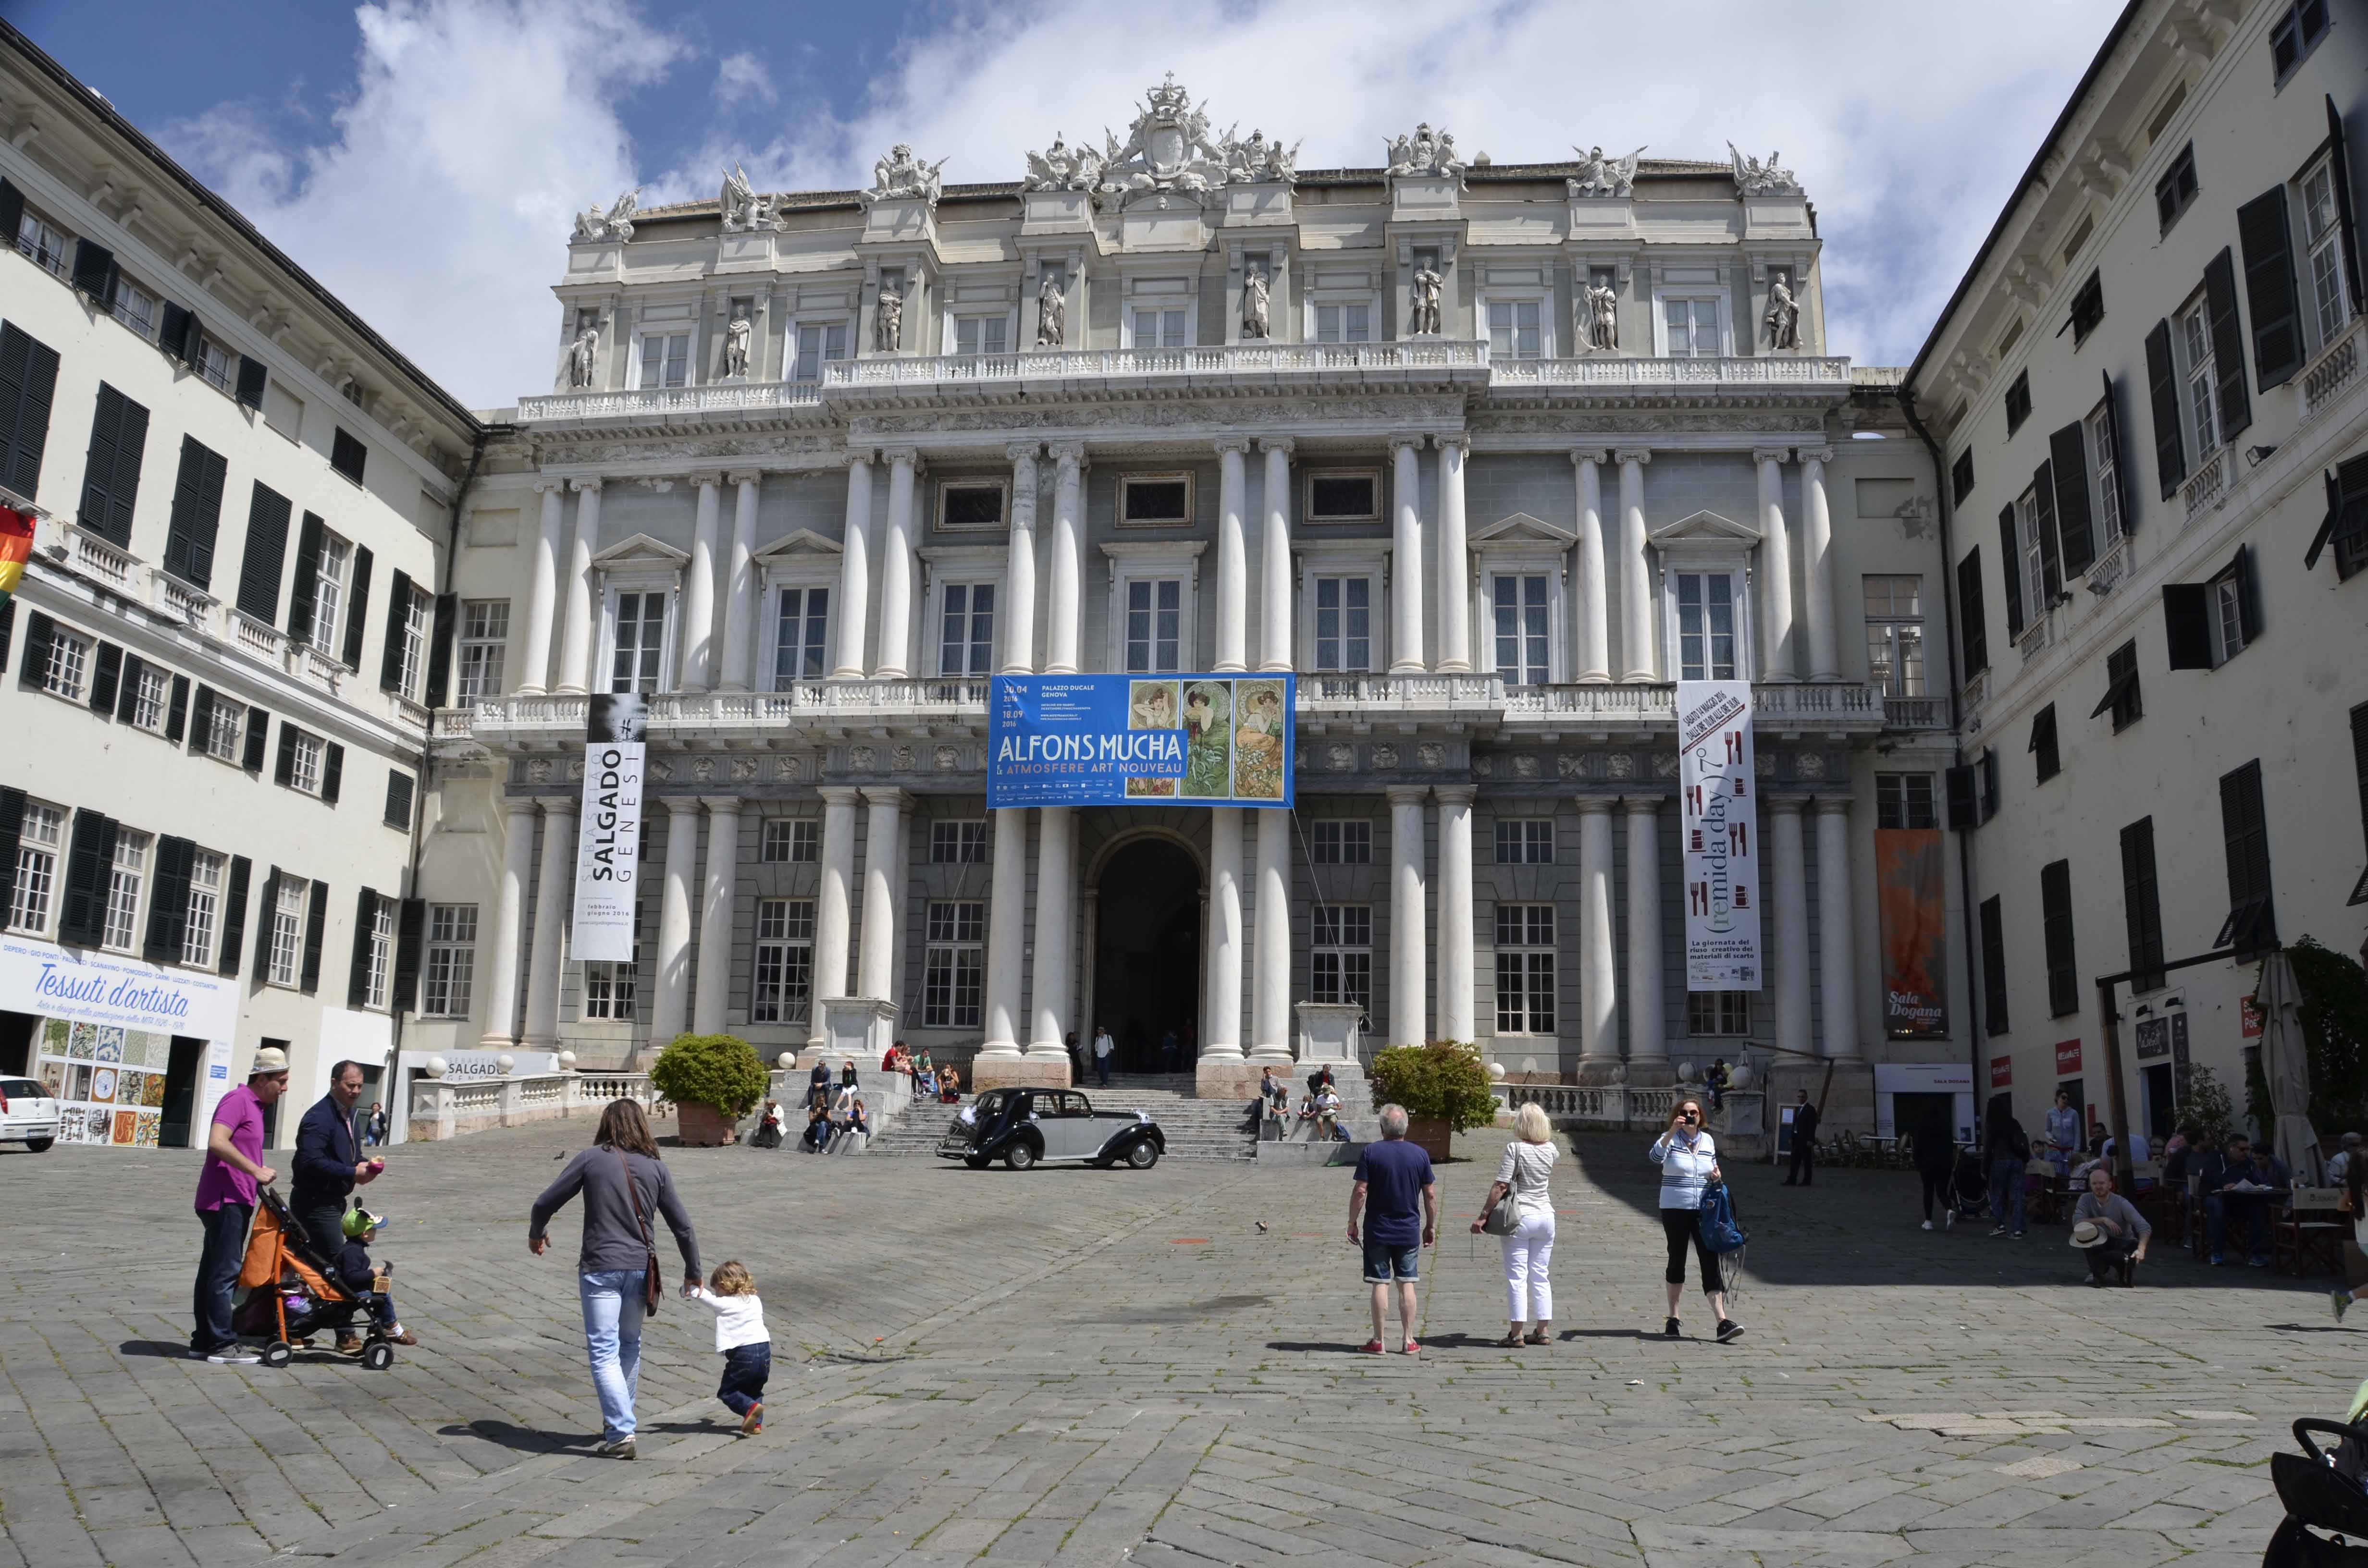 Palazzo Ducale is now a arts and cultural centre